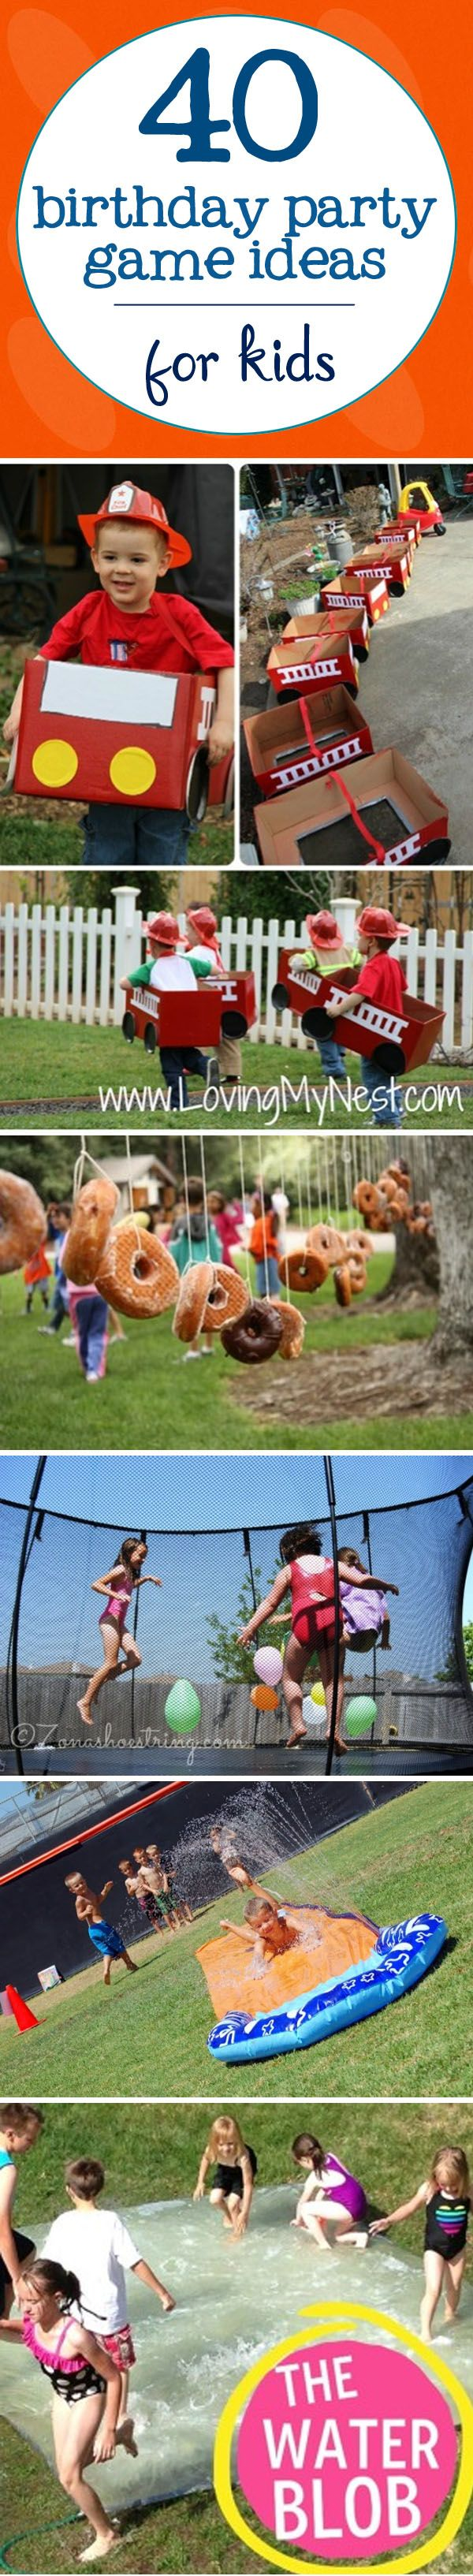 40 Birthday Party Game Ideas For Kids #birthdays #kids #games | www.signs.com